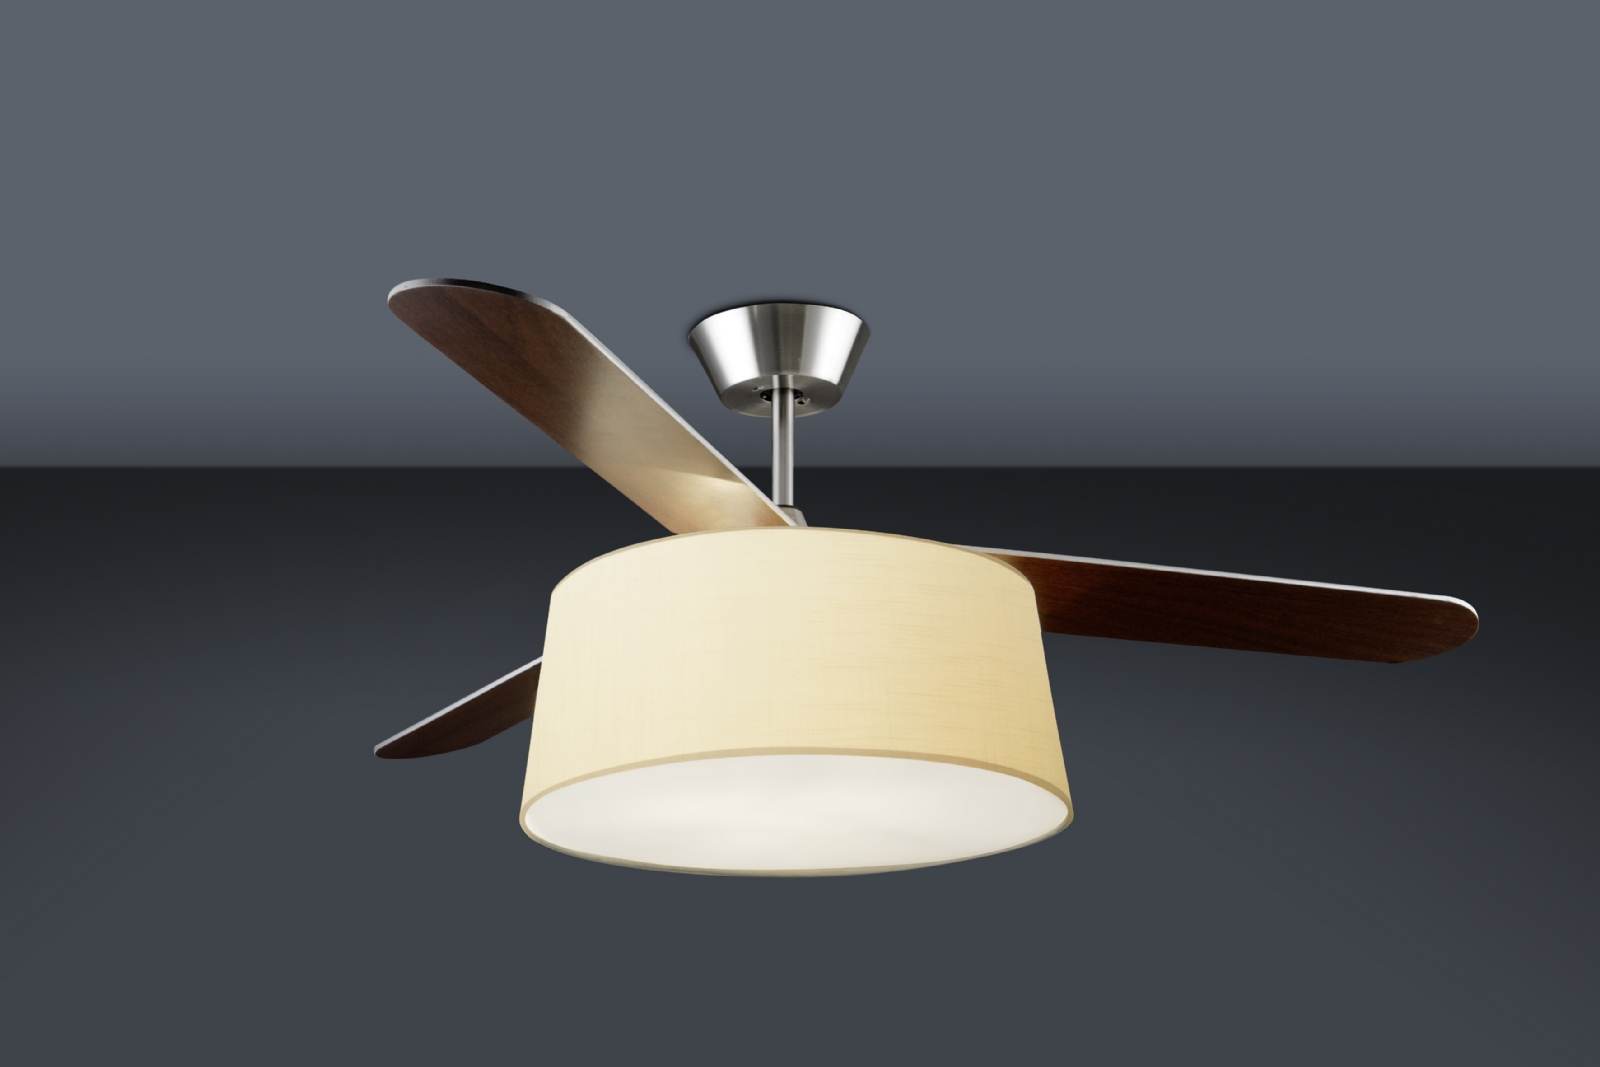 Basic tips for picking out modern ceiling fans with lights